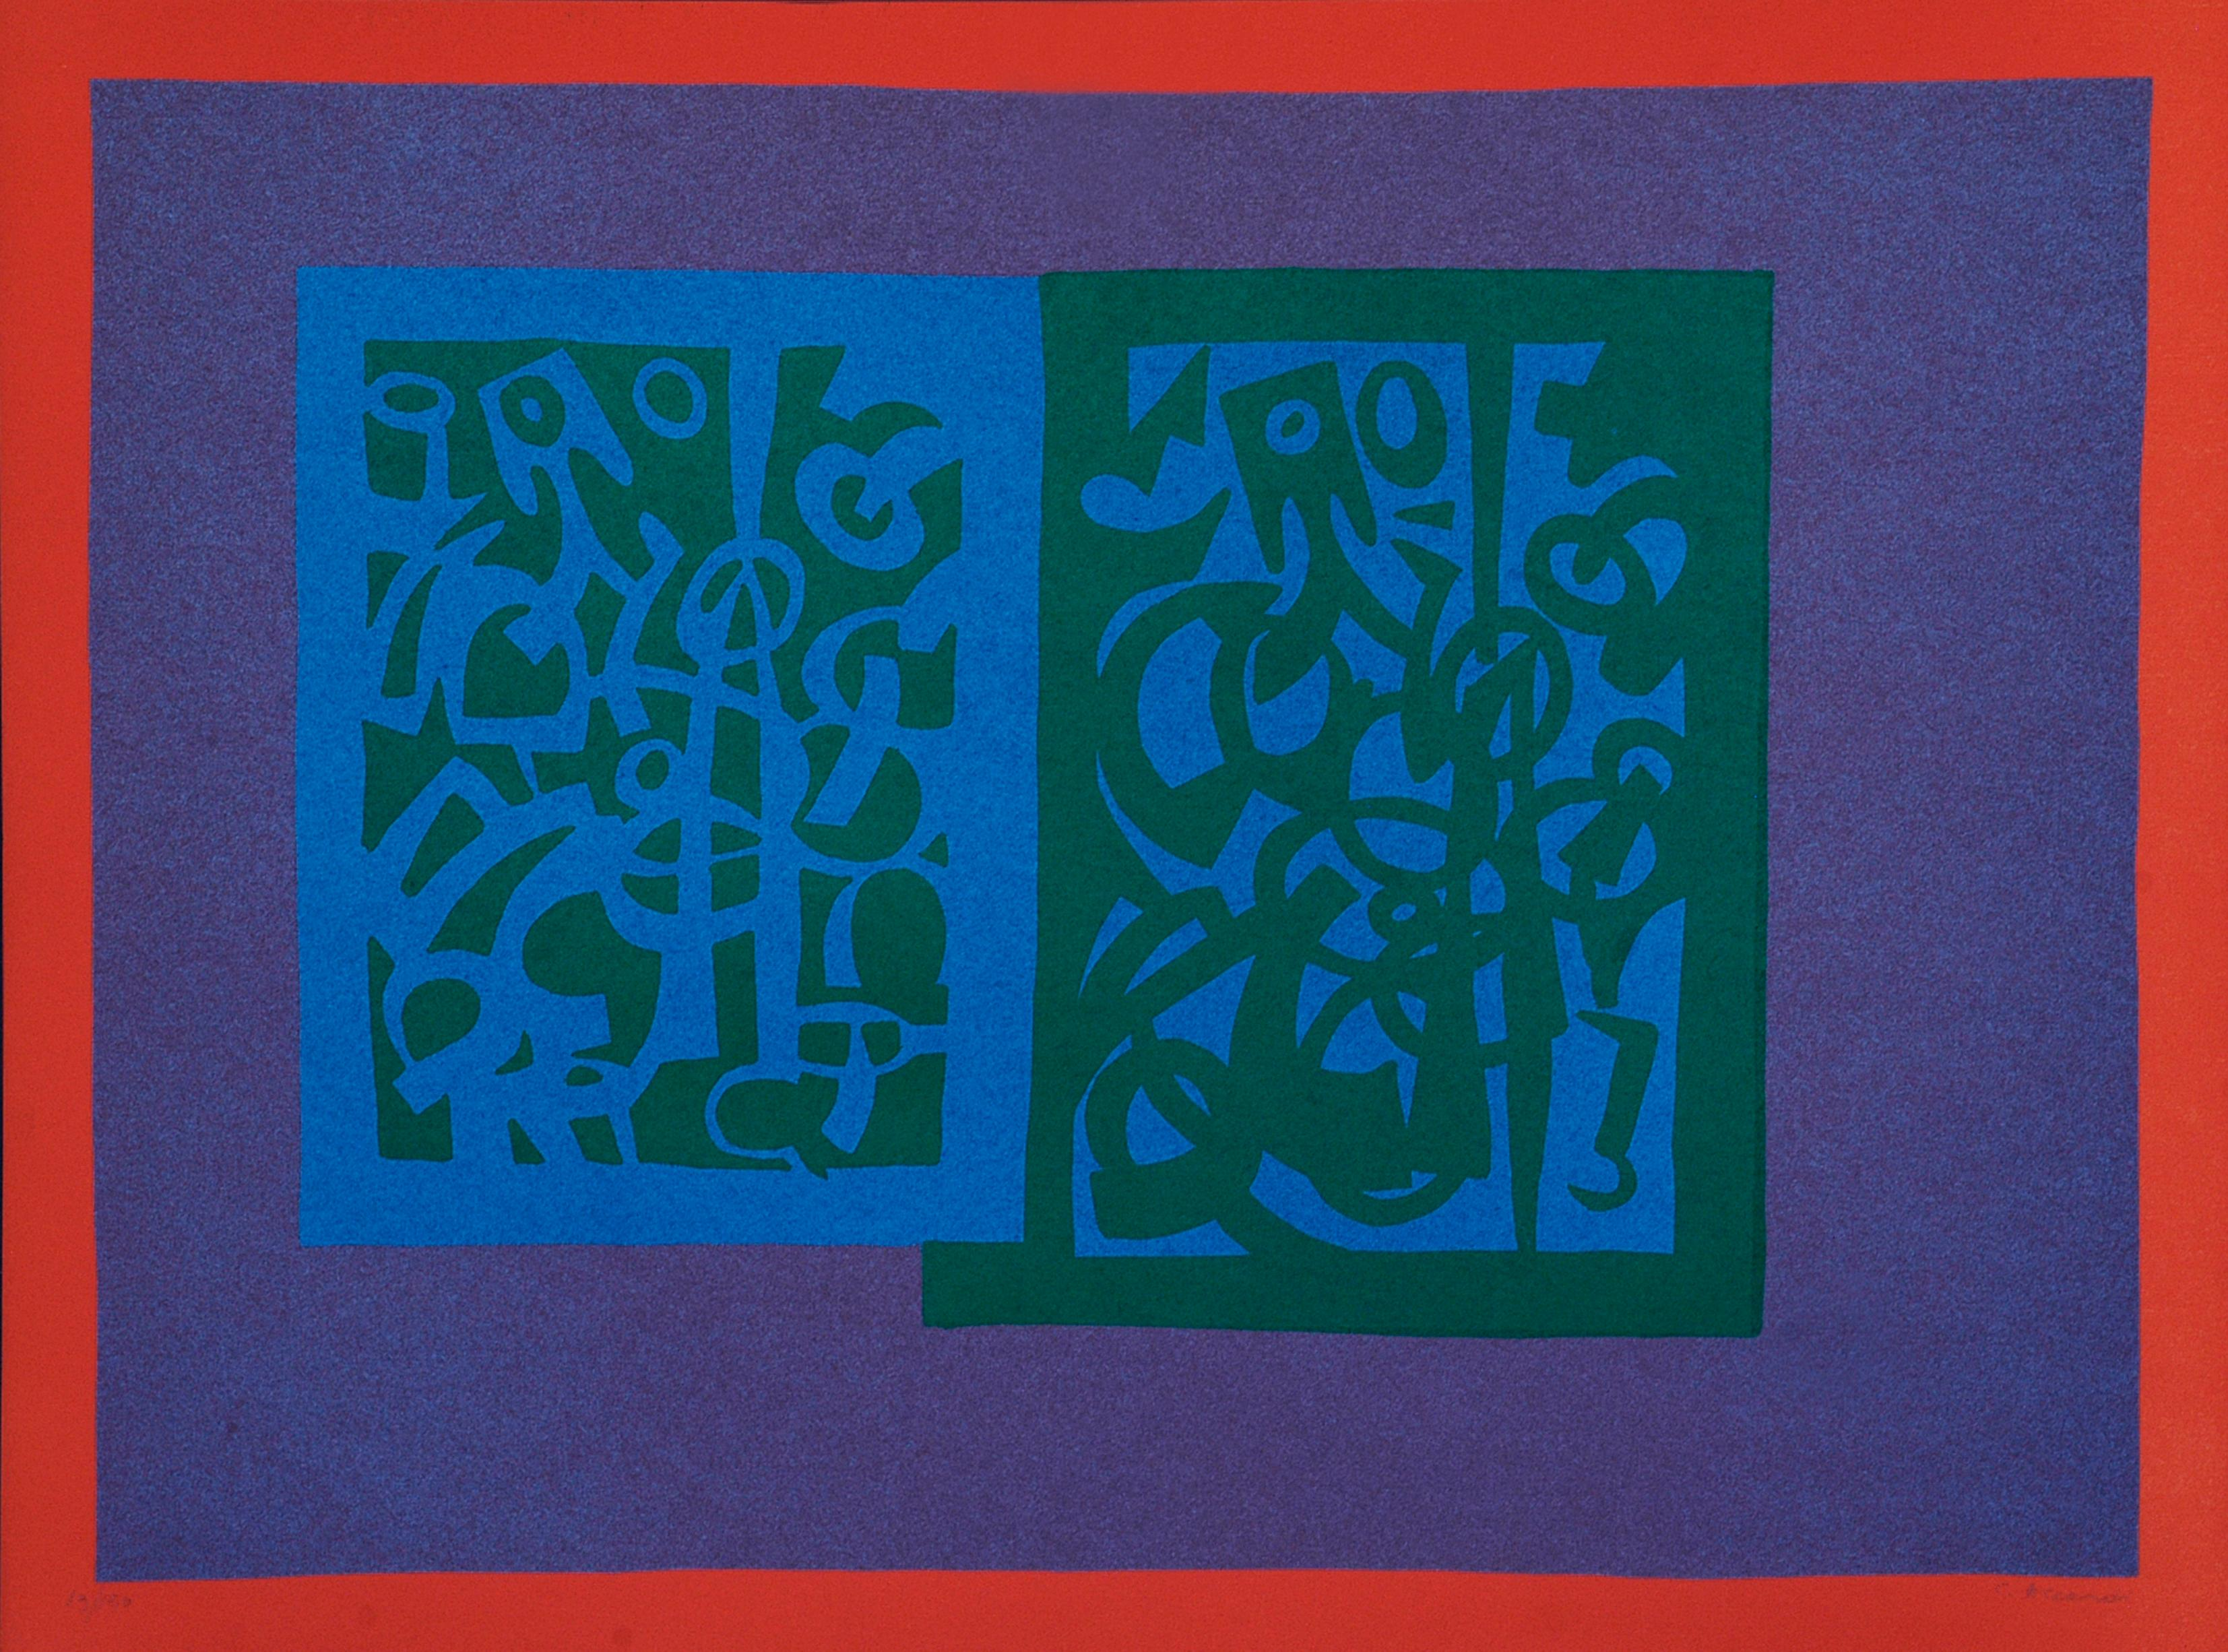 Abstract - Original Lithograph by Carla Accardi - 1970 ca.